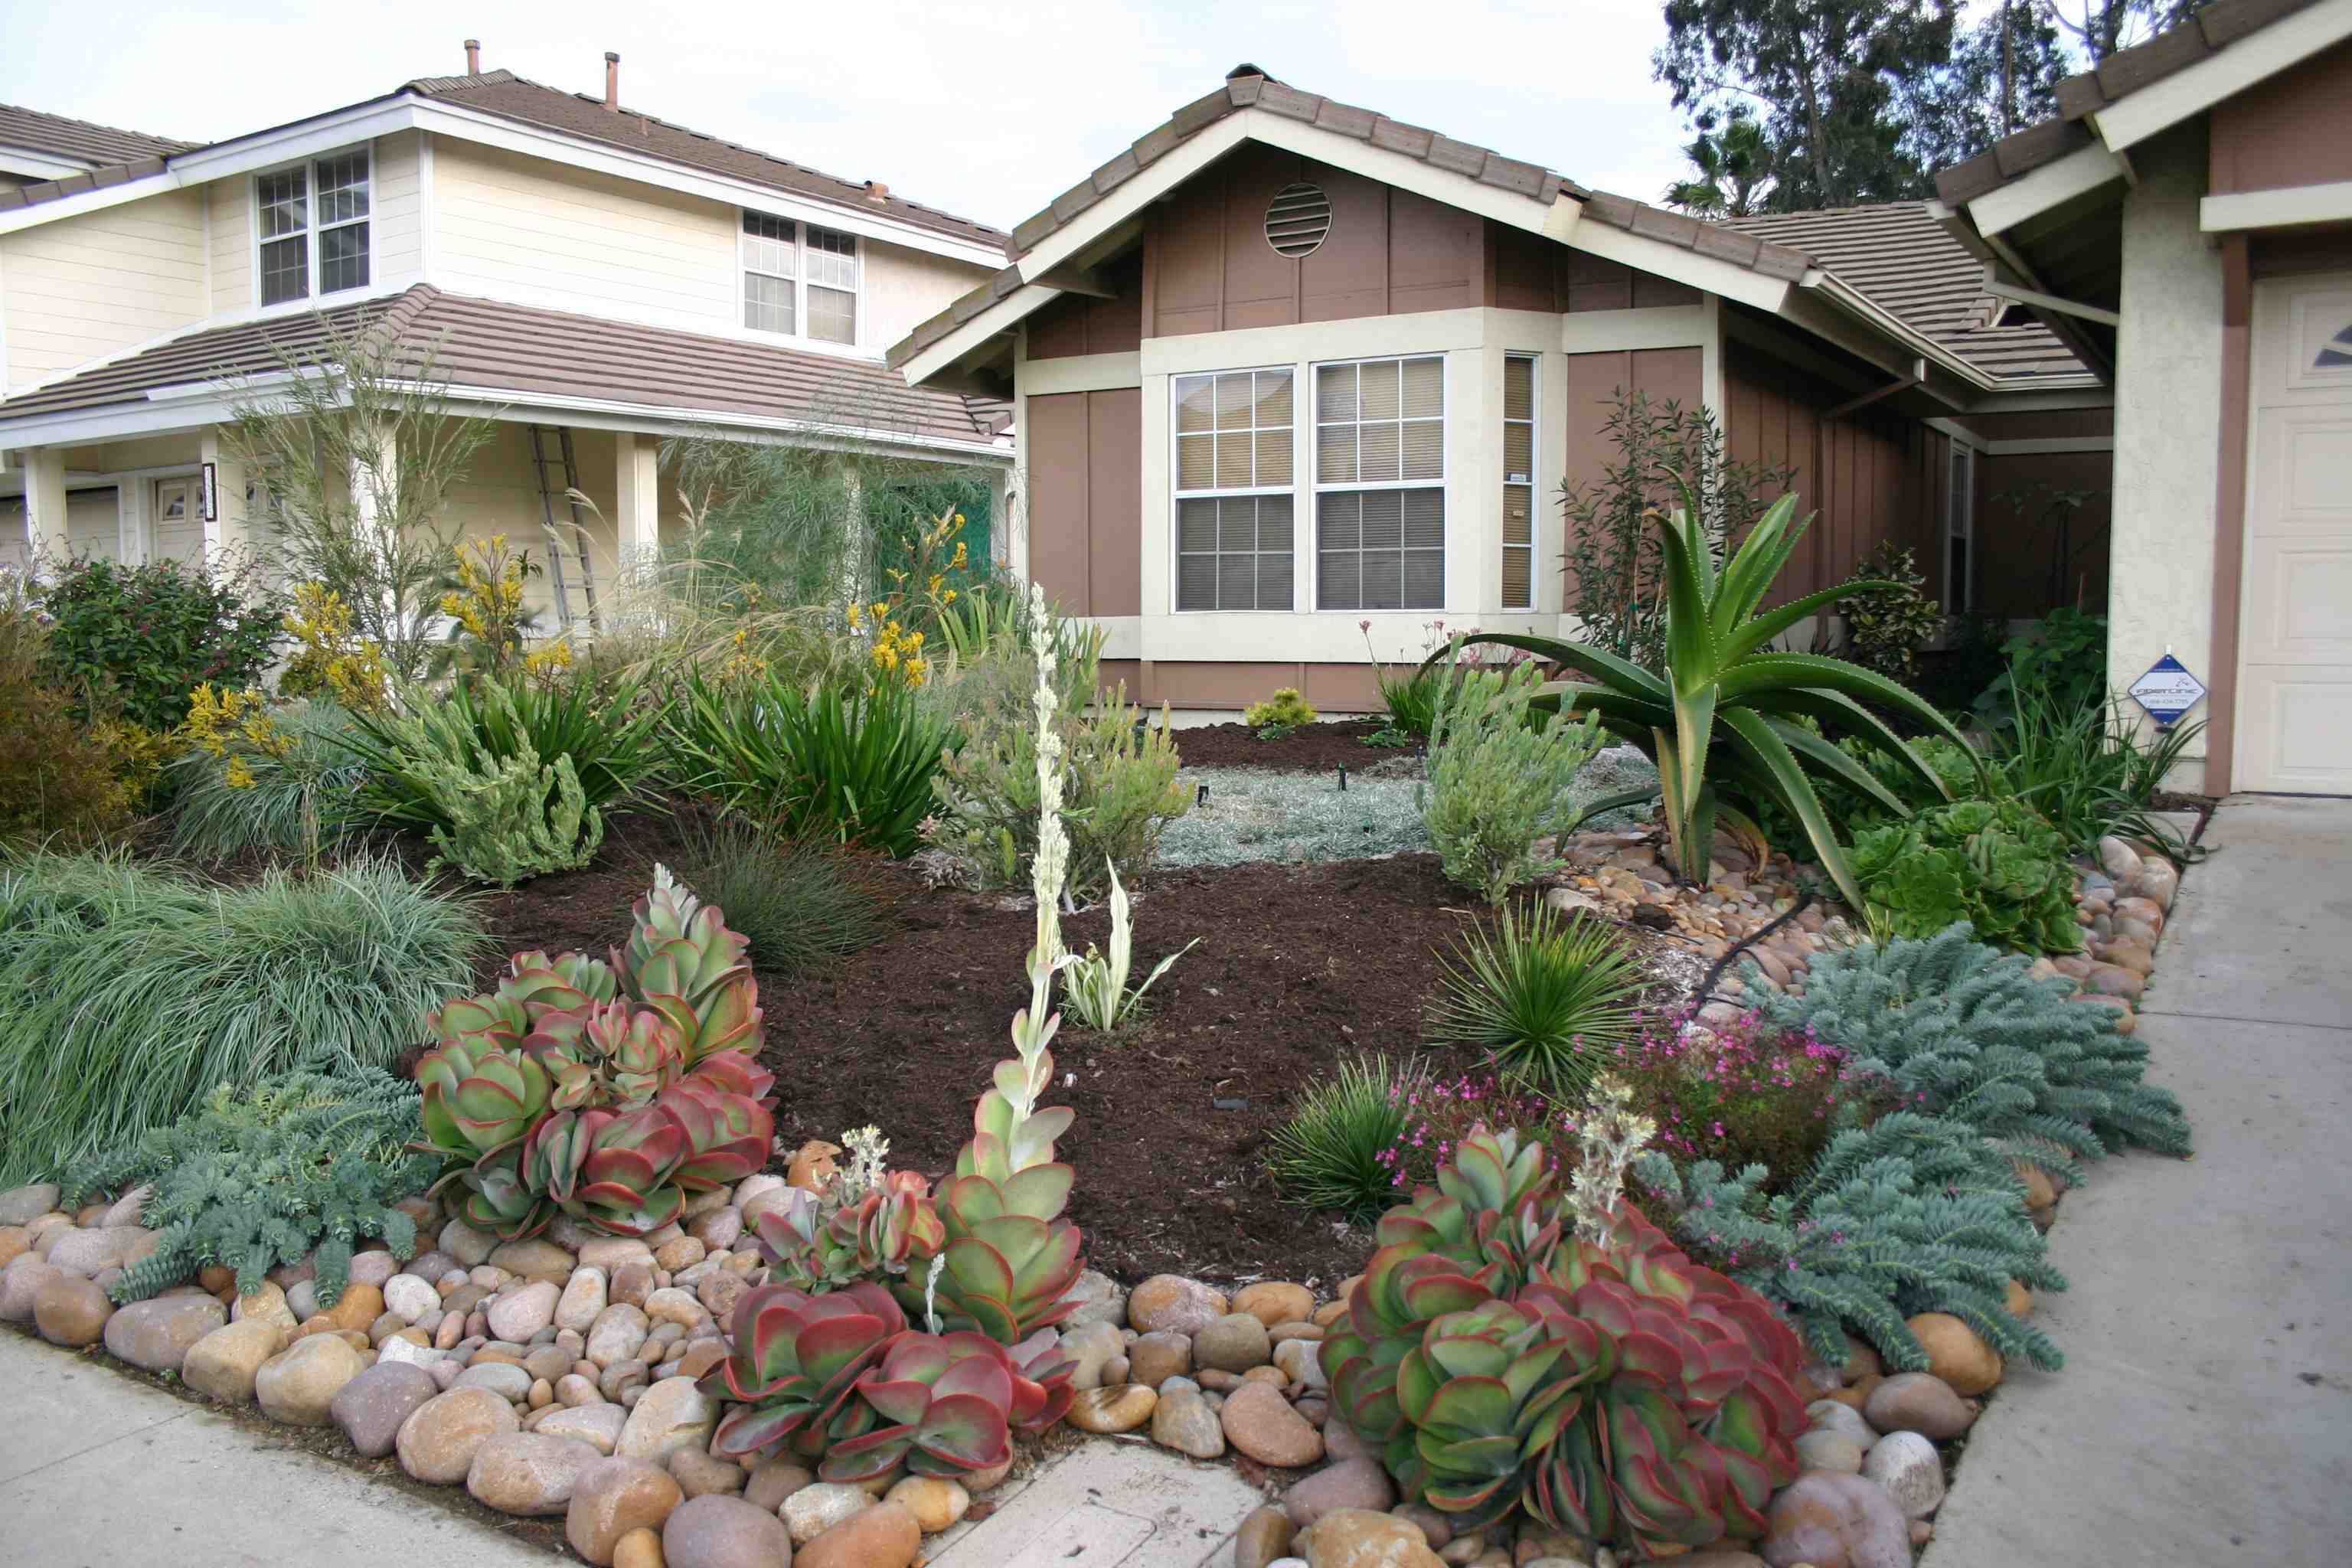 california drought resistant landscaping ideas drought tolerant landscaping los angeles. Black Bedroom Furniture Sets. Home Design Ideas